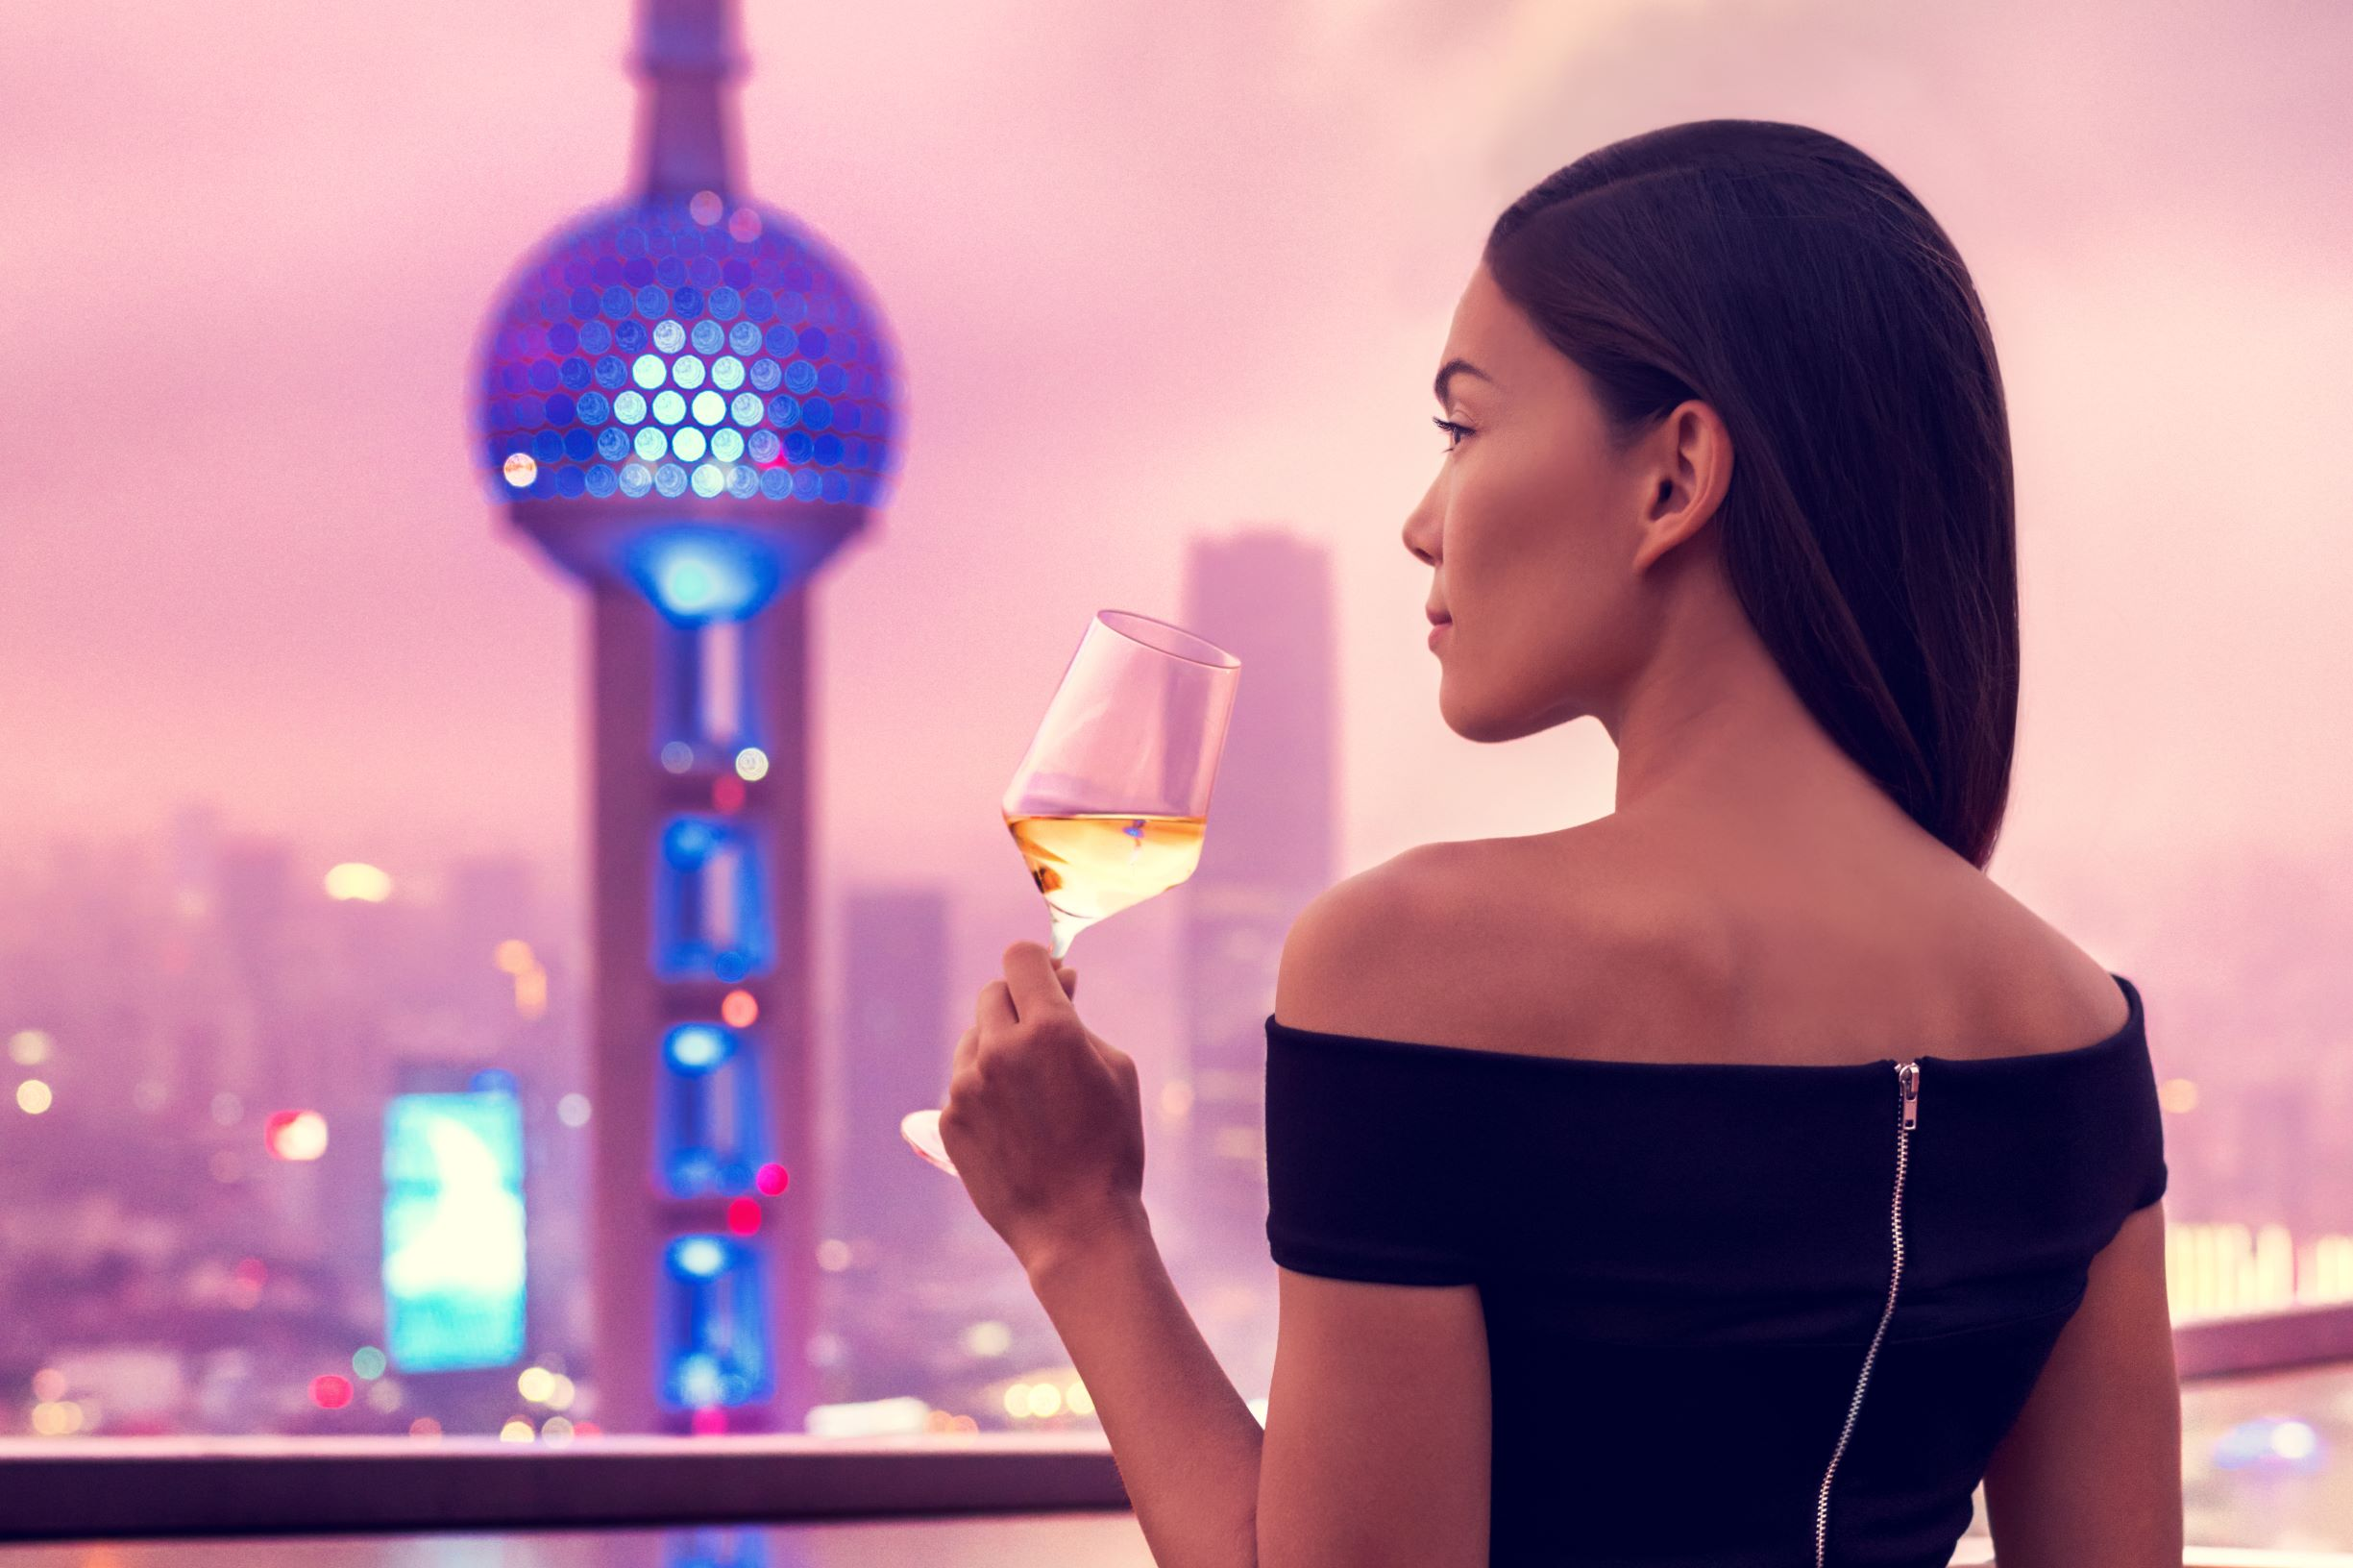 China: is the craze for consumption really there?